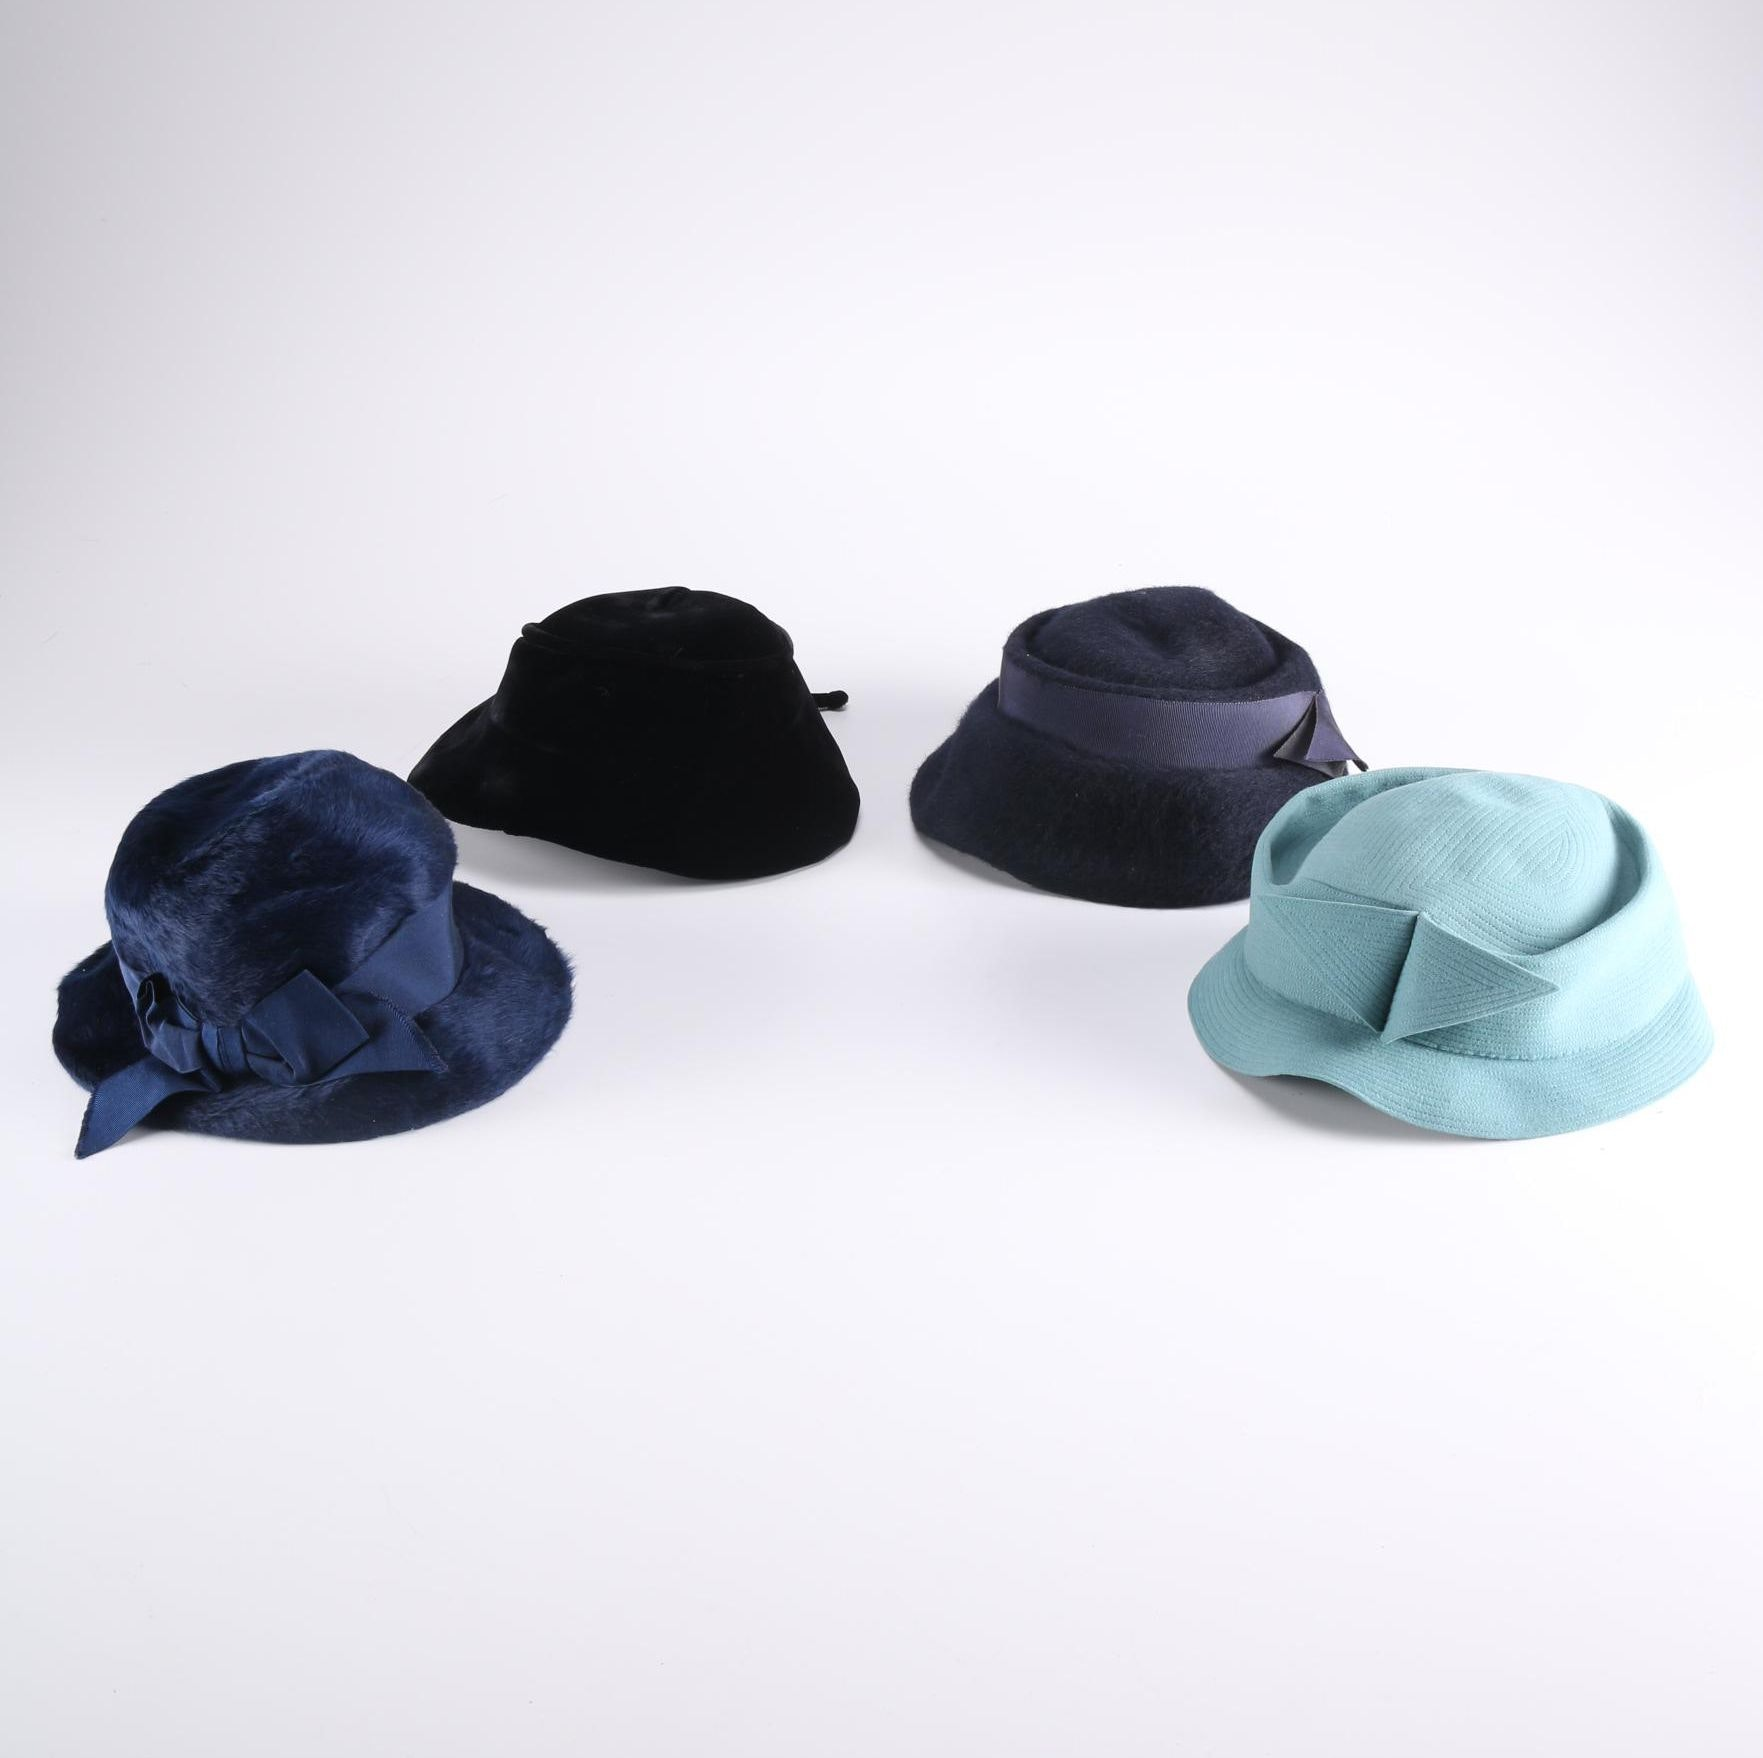 Women's Vintage Hats Featuring Cloches